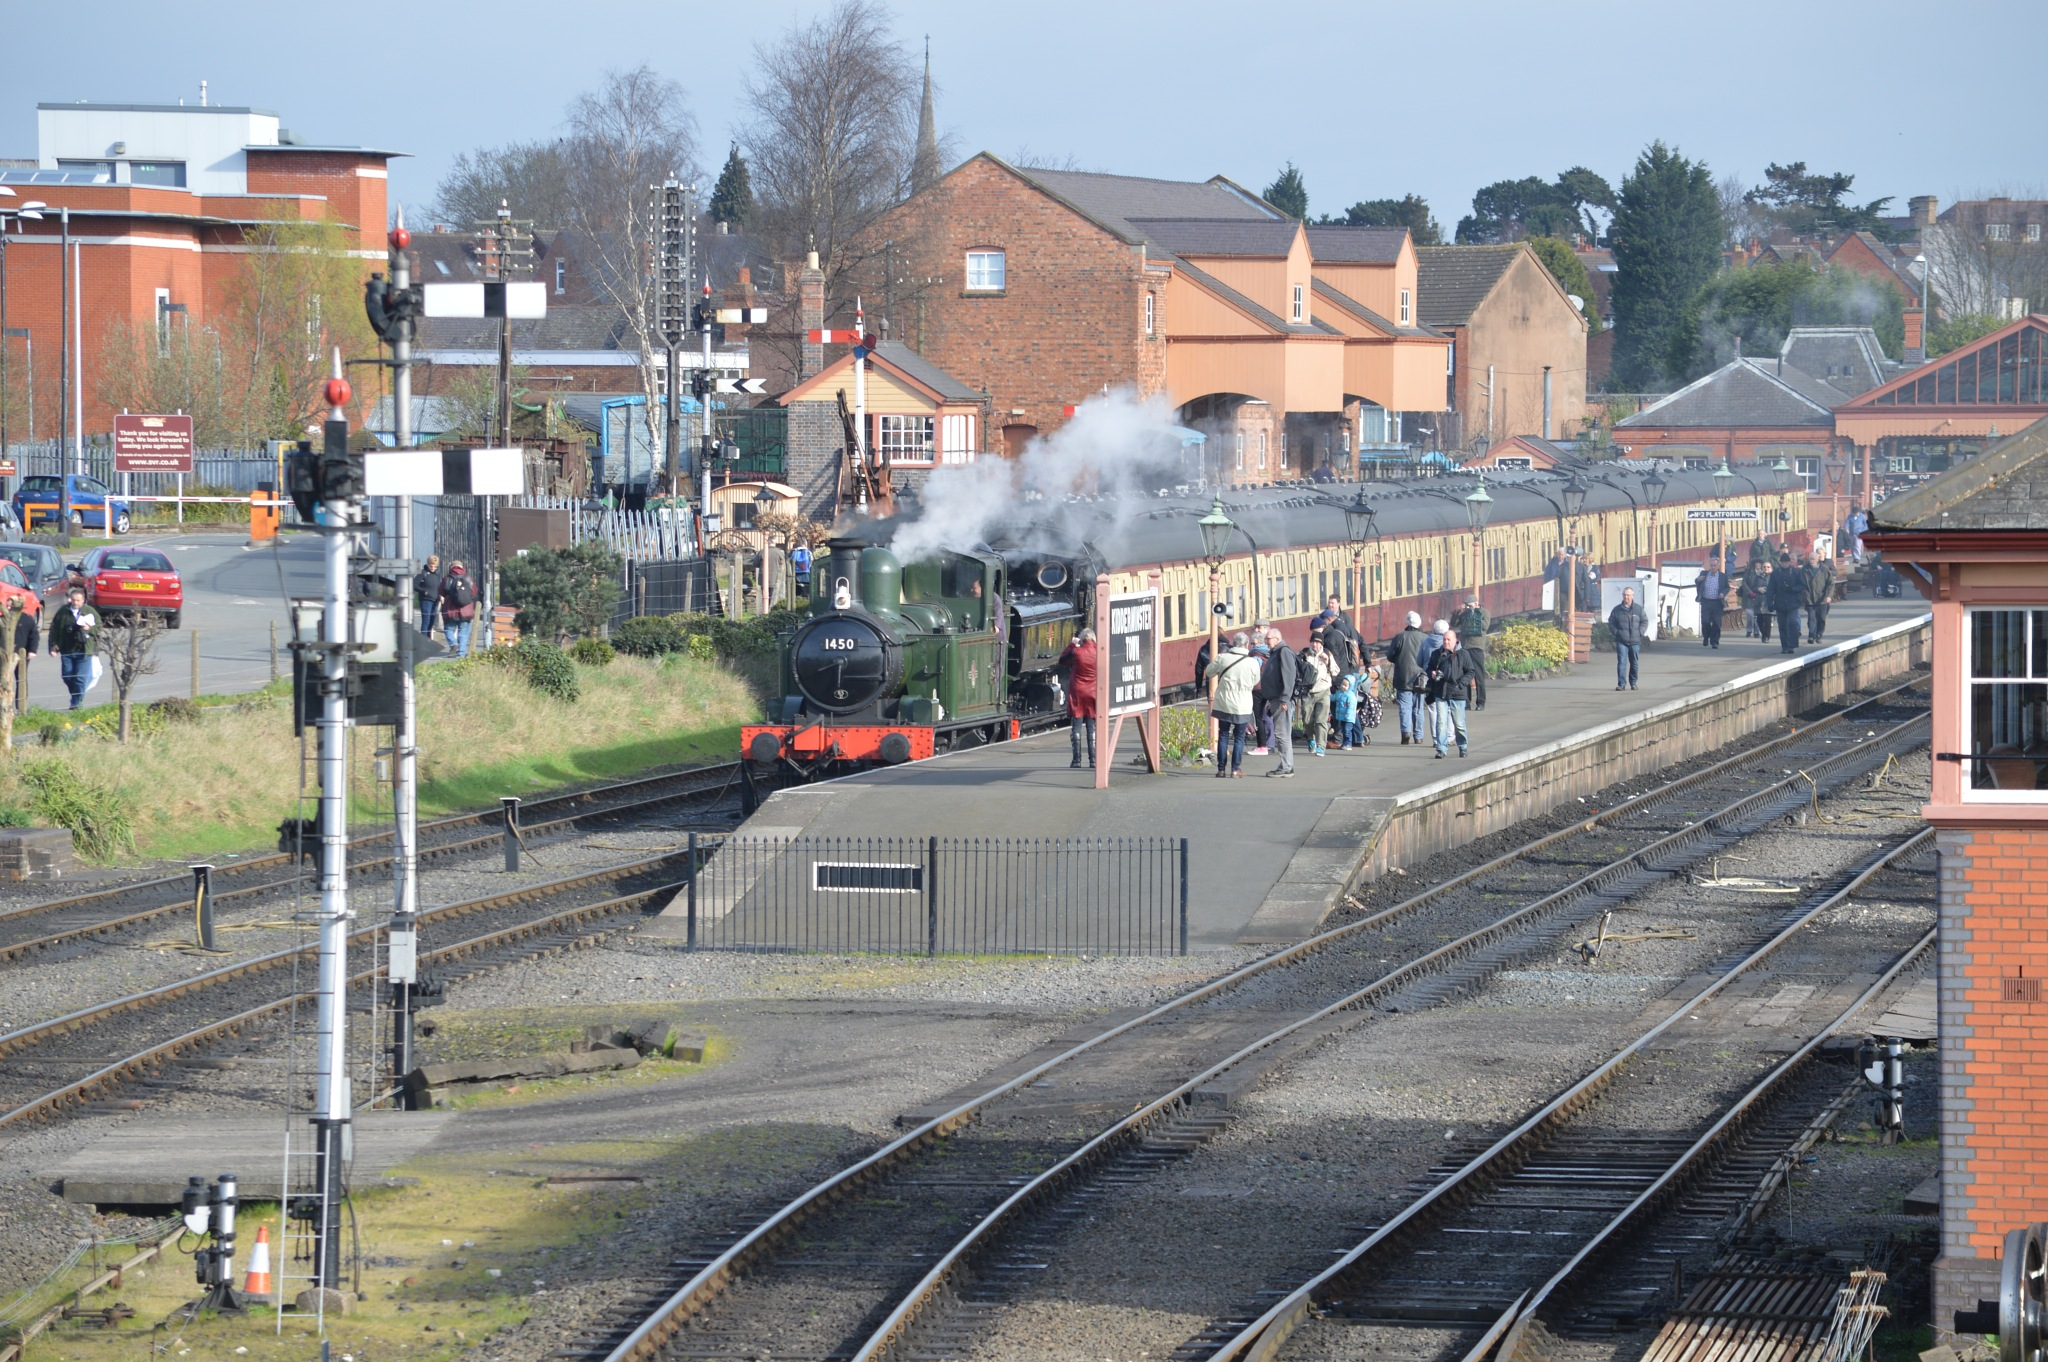 SIMMERING IN THE SUN AT kIDDERMINSTER by adrian.williams.58323